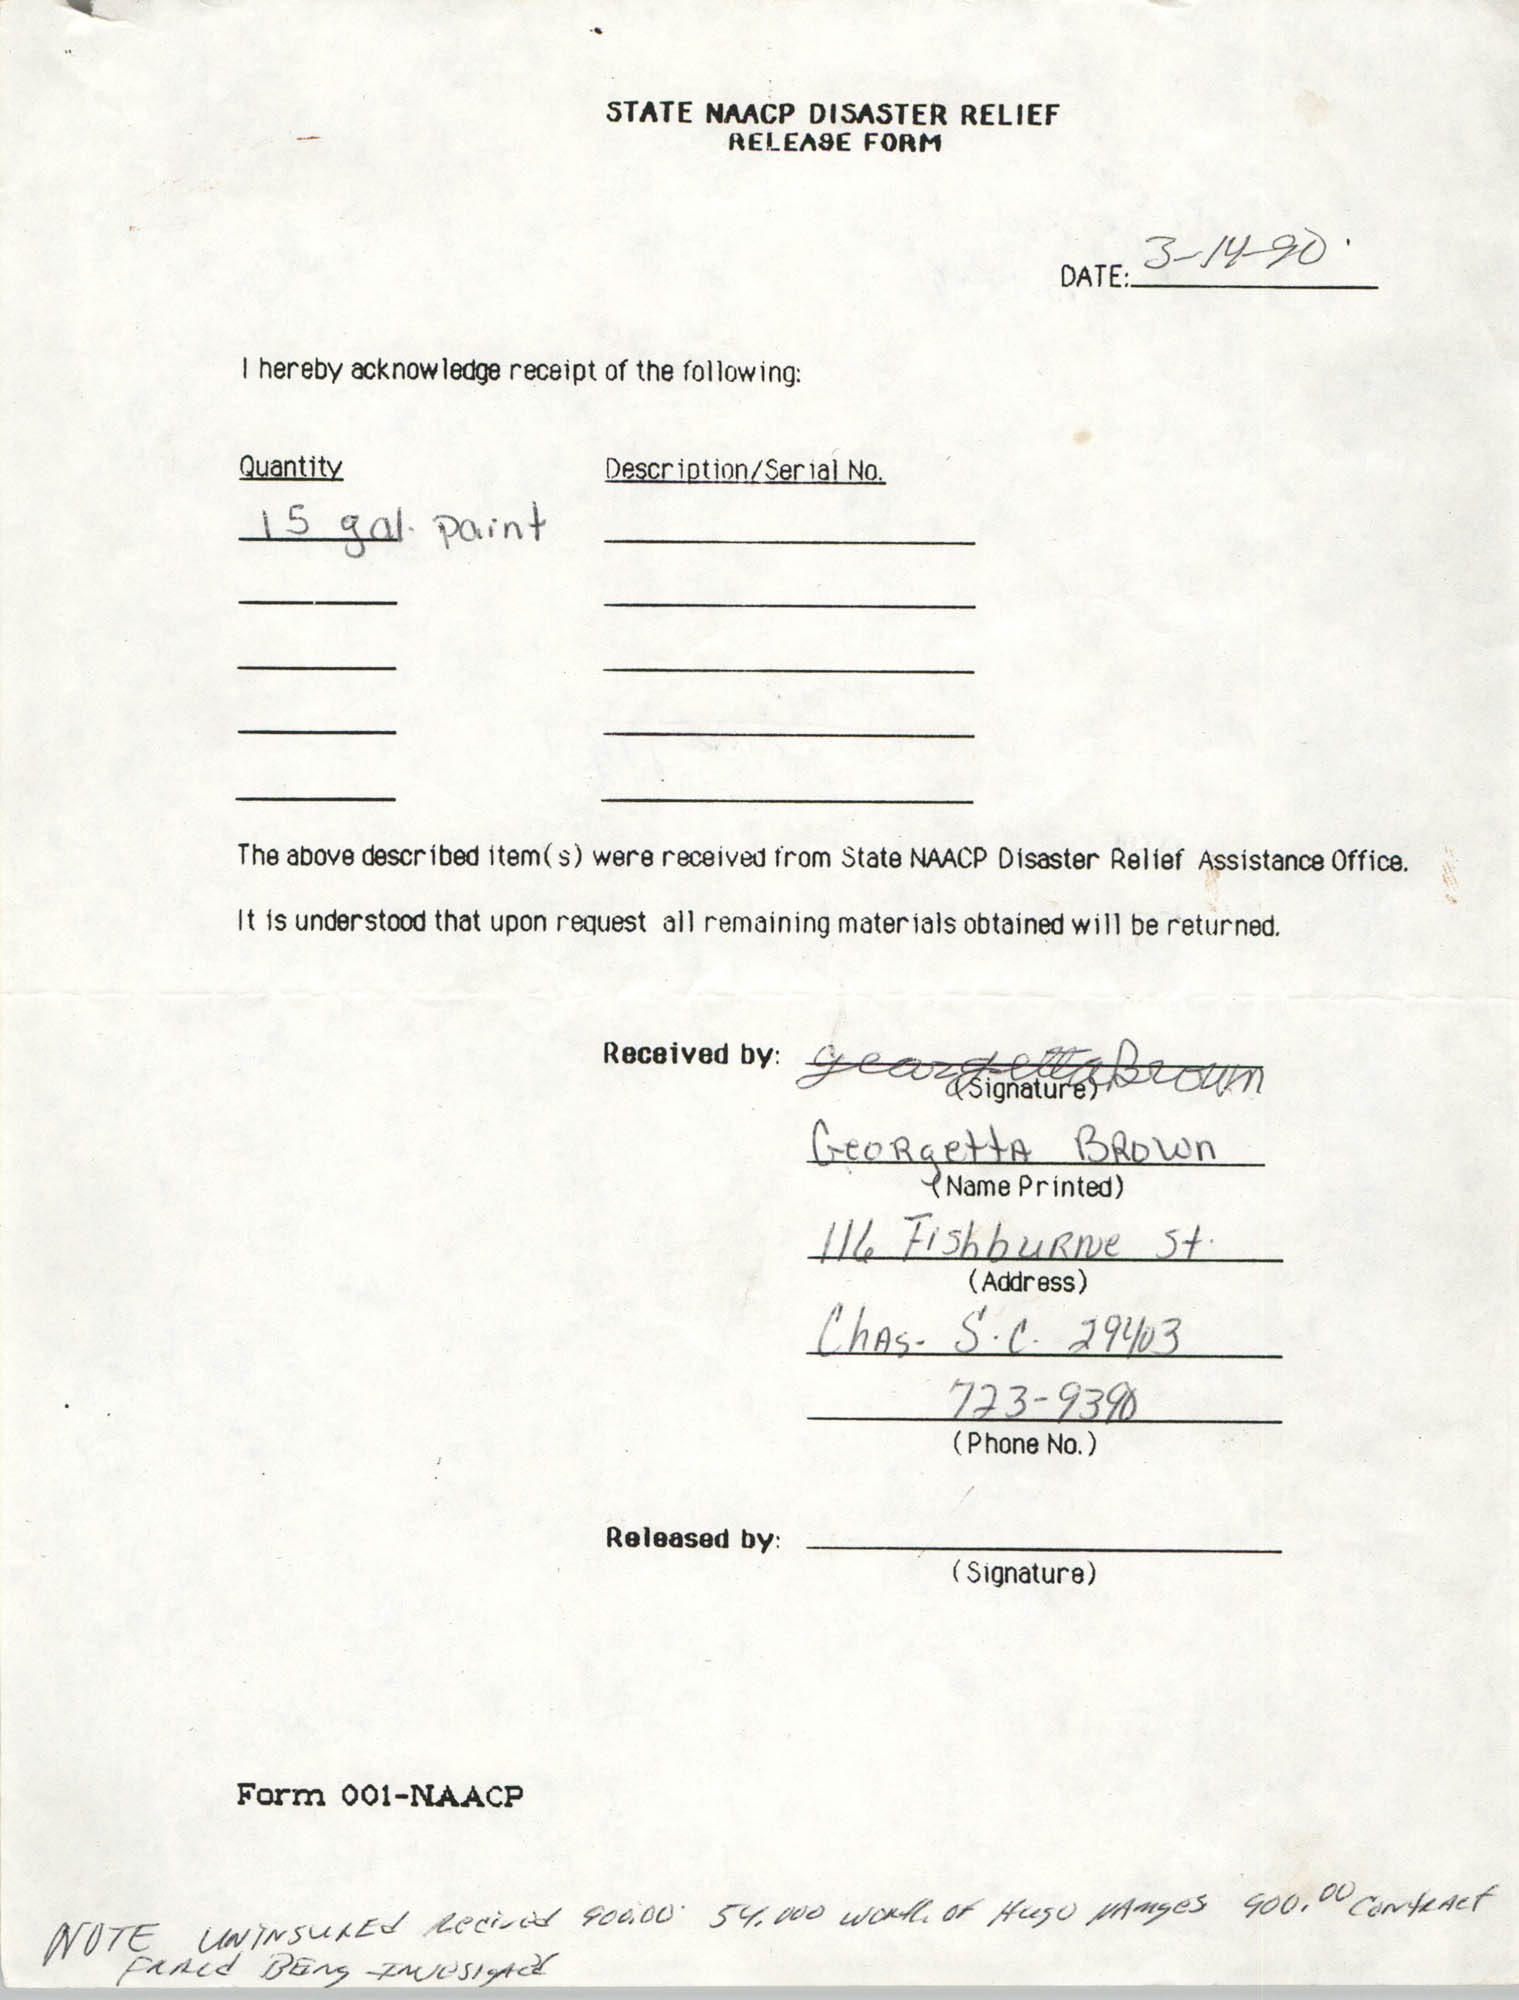 State NAACP Disaster Relief, Hurricane Huge Release Form, 1989, Page 15